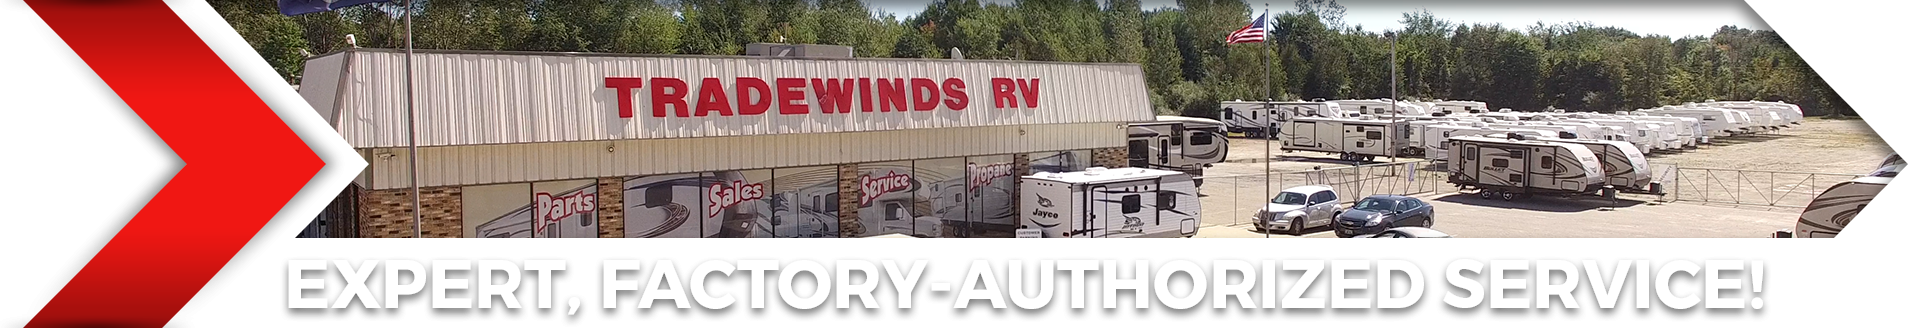 Store Trade Winds RV